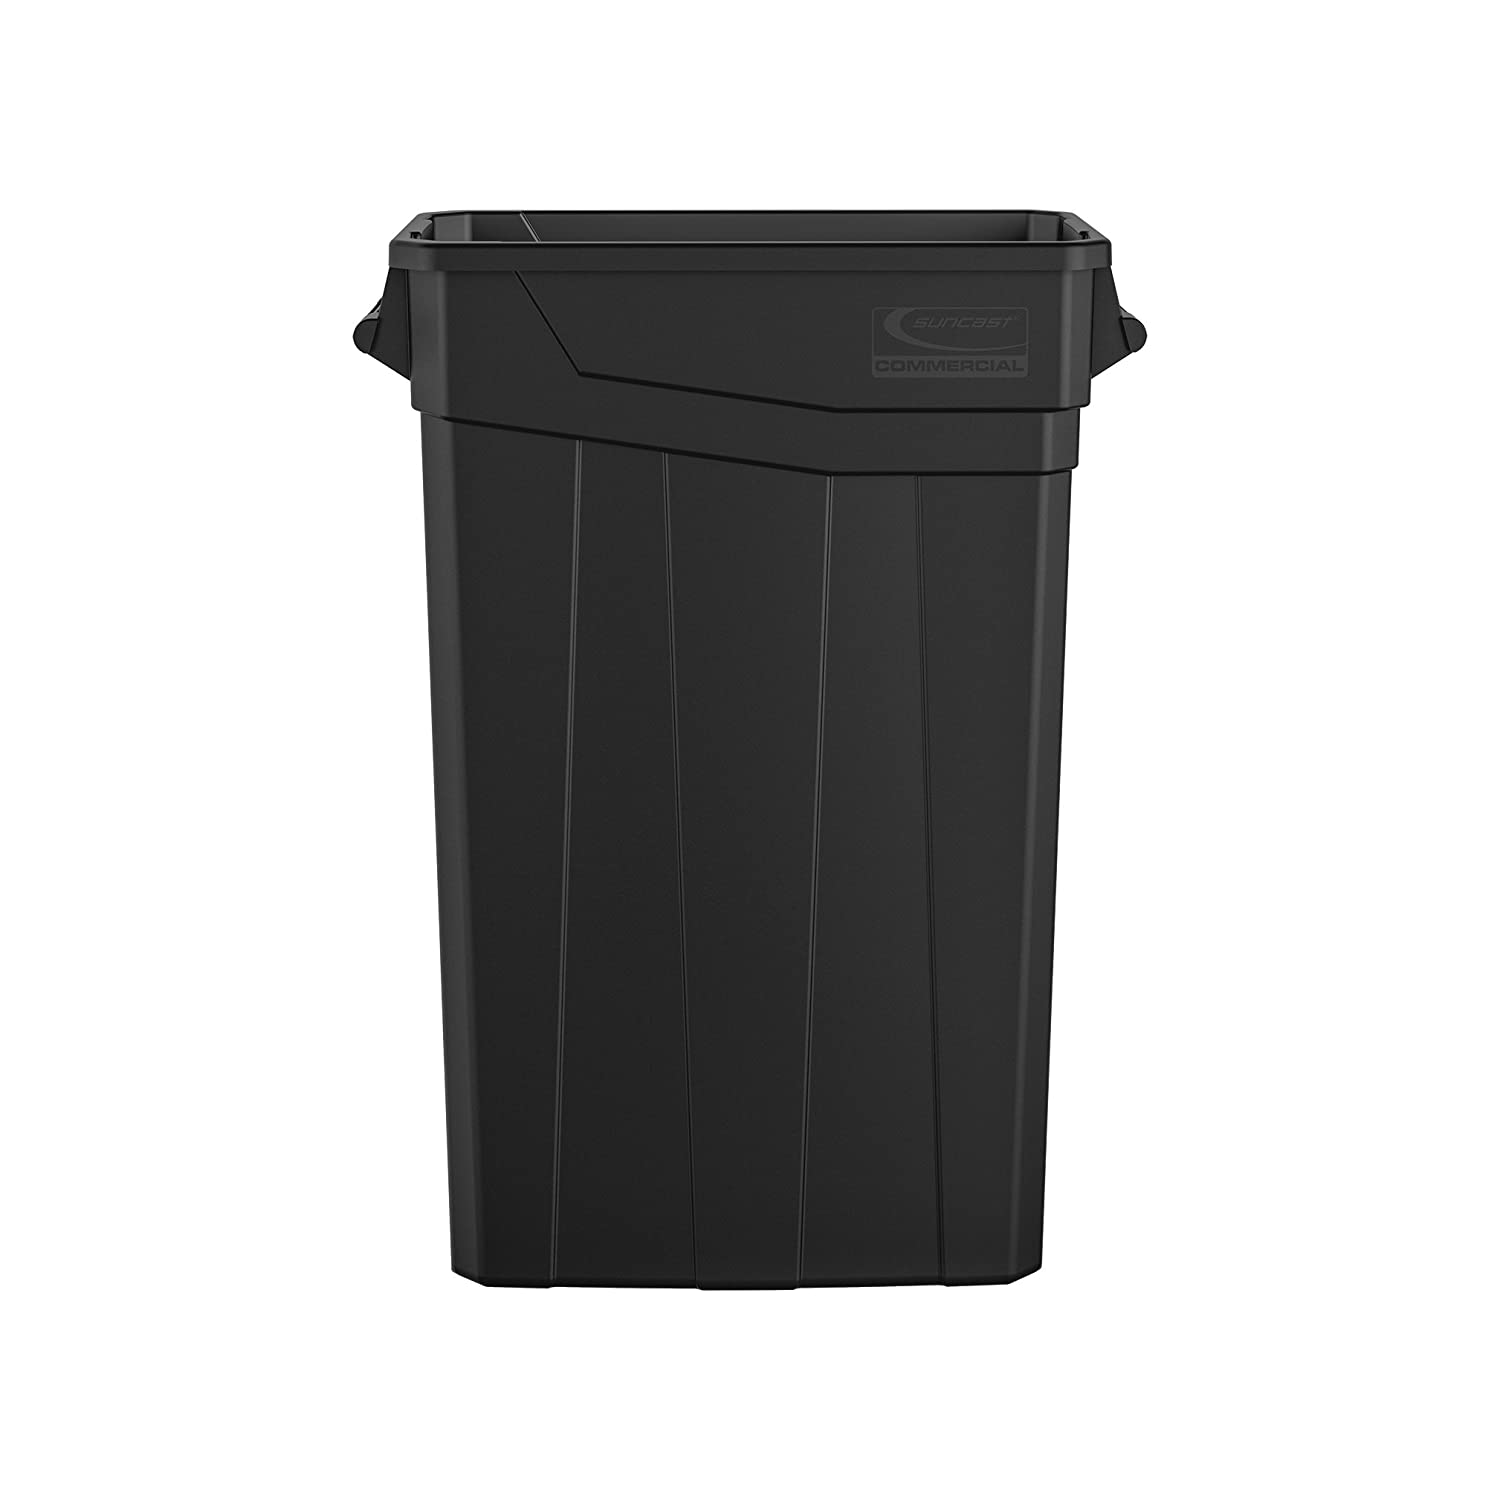 Black 4-Pack Basics Can and Bottle Recycling Lid for 23 Gallon Commercial Slim Trash Can